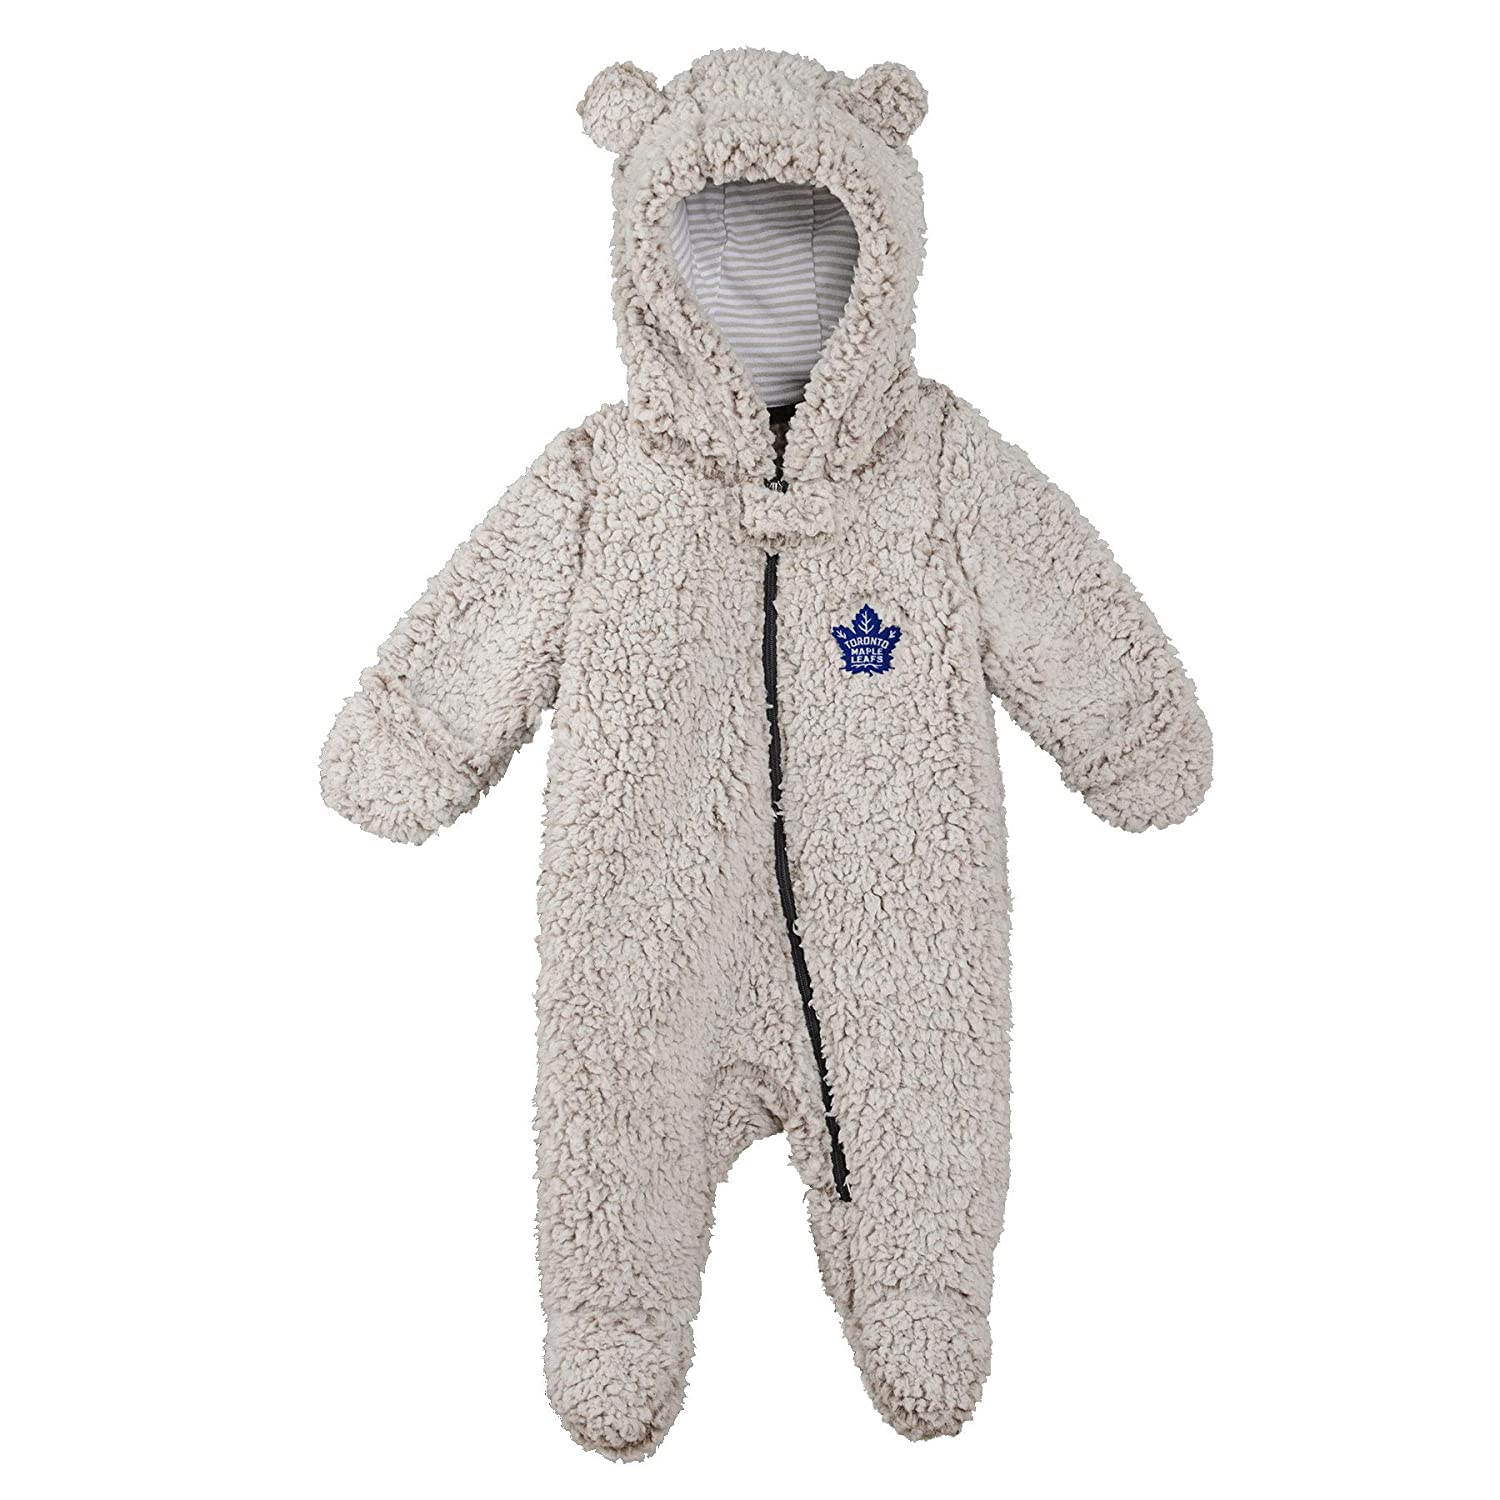 OuterStuff Toronto Maple Leafs Newborn Game Nap Teddy Fleece Bunting Pram